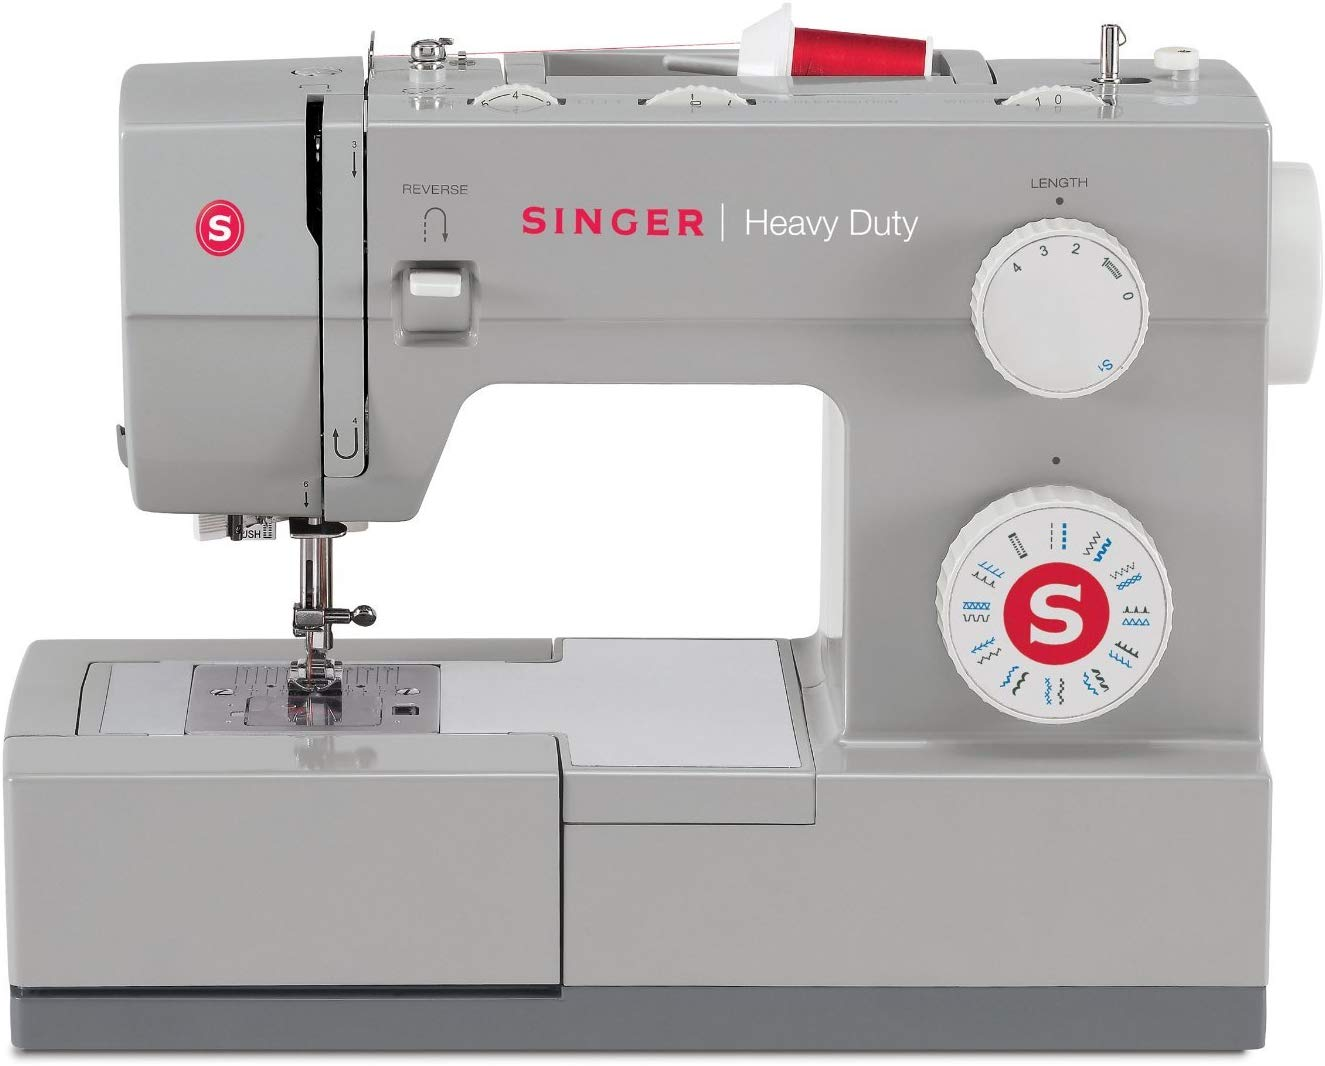 Singer 4423 Sewing Machine - Heavy Duty Sewing Machines